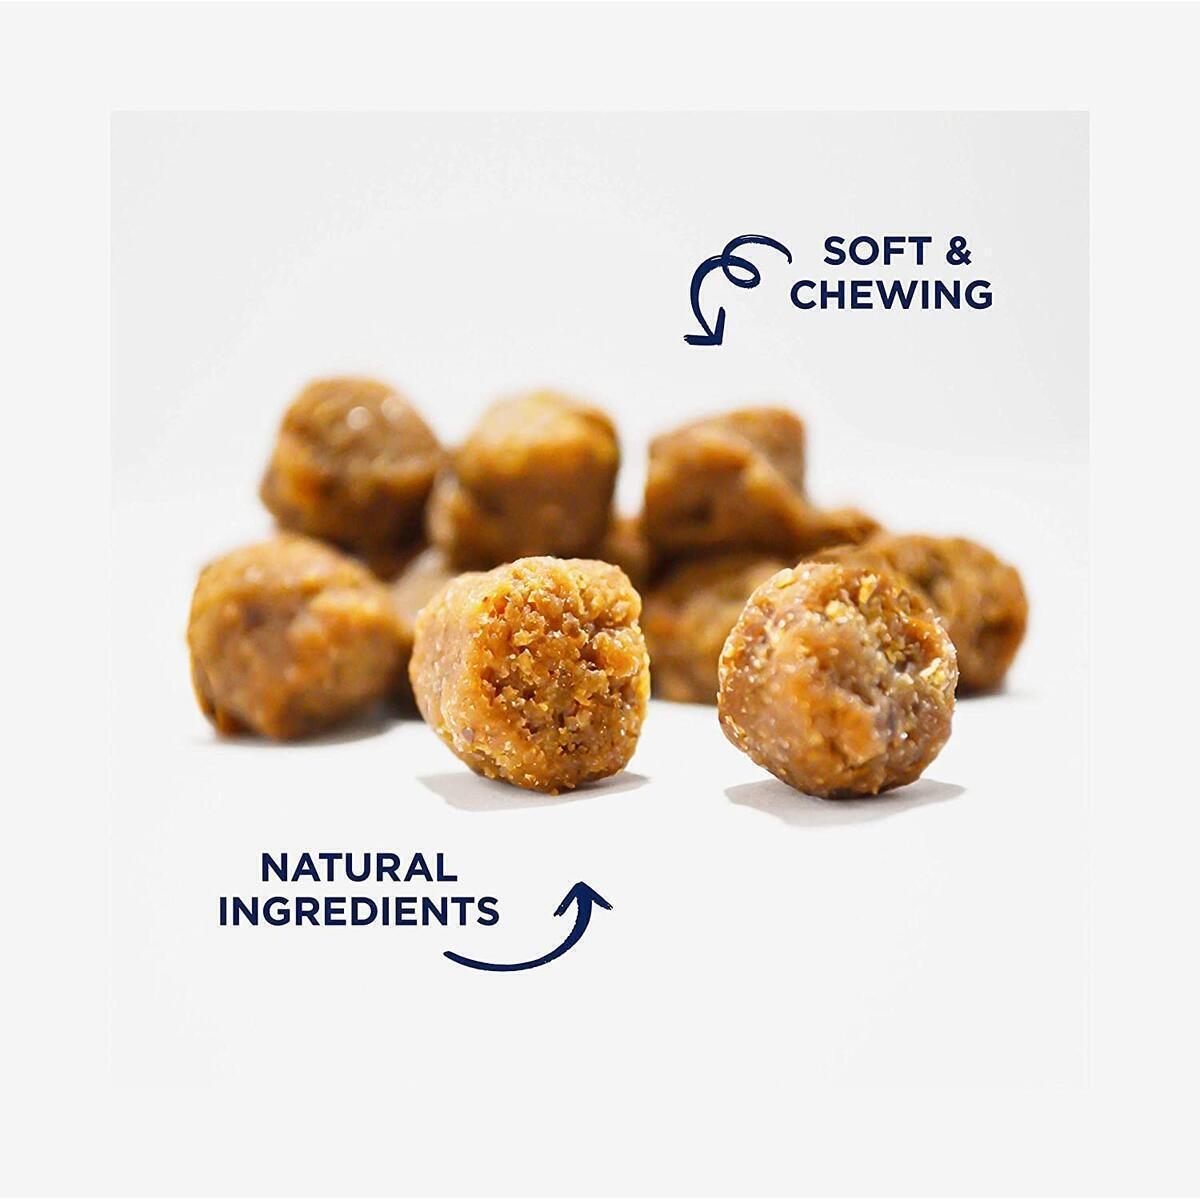 Natural Dog Daily Multivitamin Treats | Support Hip & Joint, Skin & Coat, Immune Booster, Heart Health & Digestive System | Contain Organic Hemp, Calcium, Taurine, Vitamins & Minerals | Made in USA